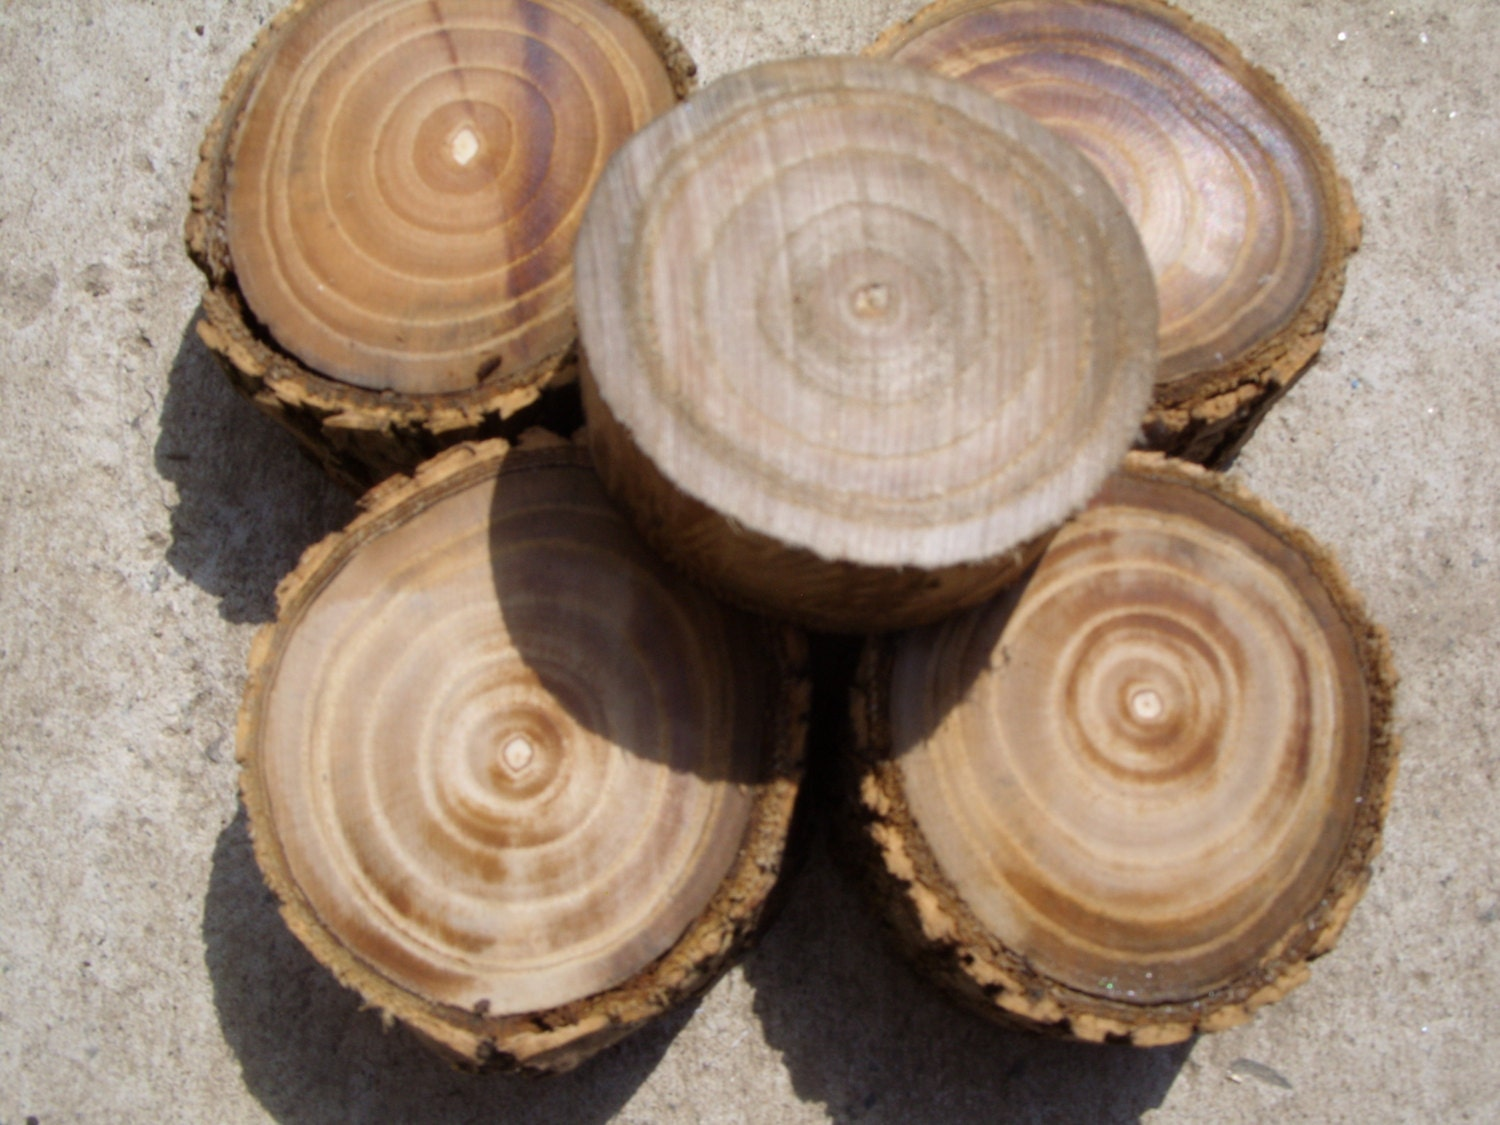 5 wood blocksdiy crafts wood pieces miniature tree stump for How to make illuminated tree stumps